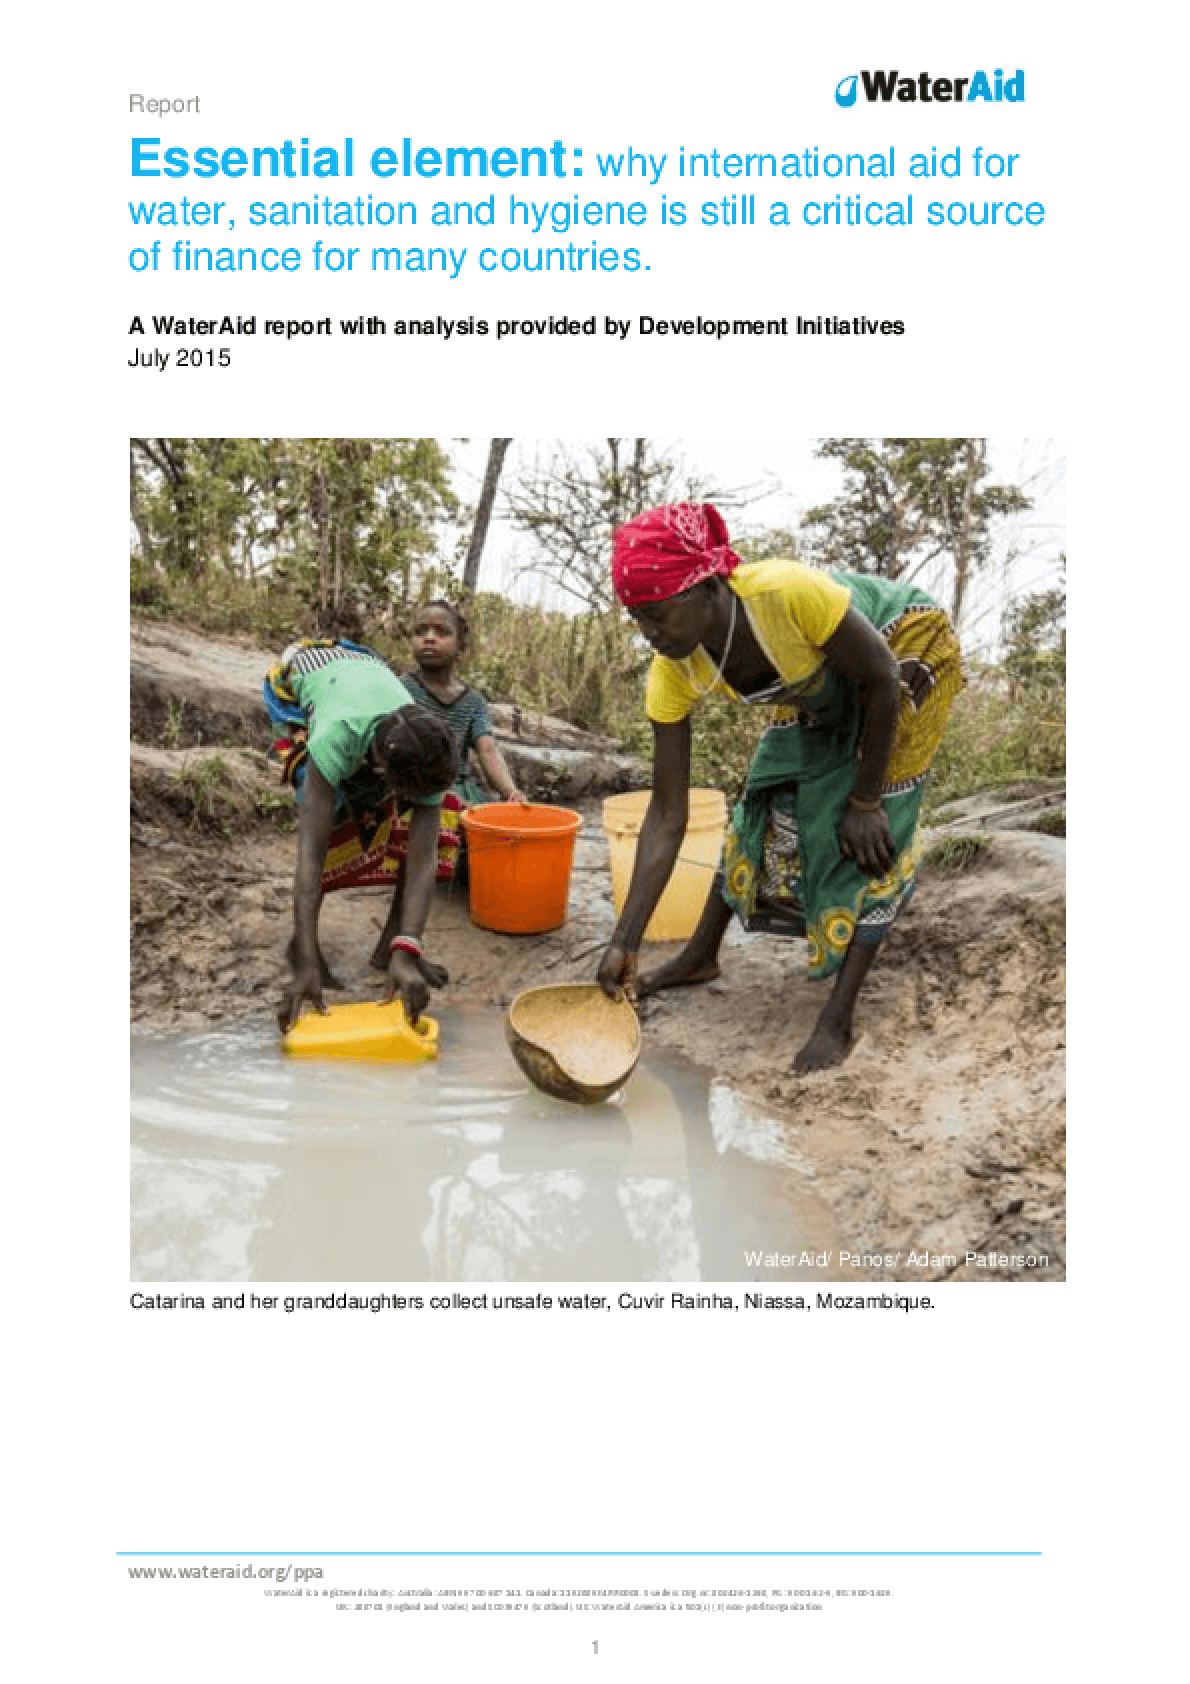 Essential Element: Why International Aid for Water, Sanitation and Hygiene Is Still a Critical Source of Finance for Many Countries